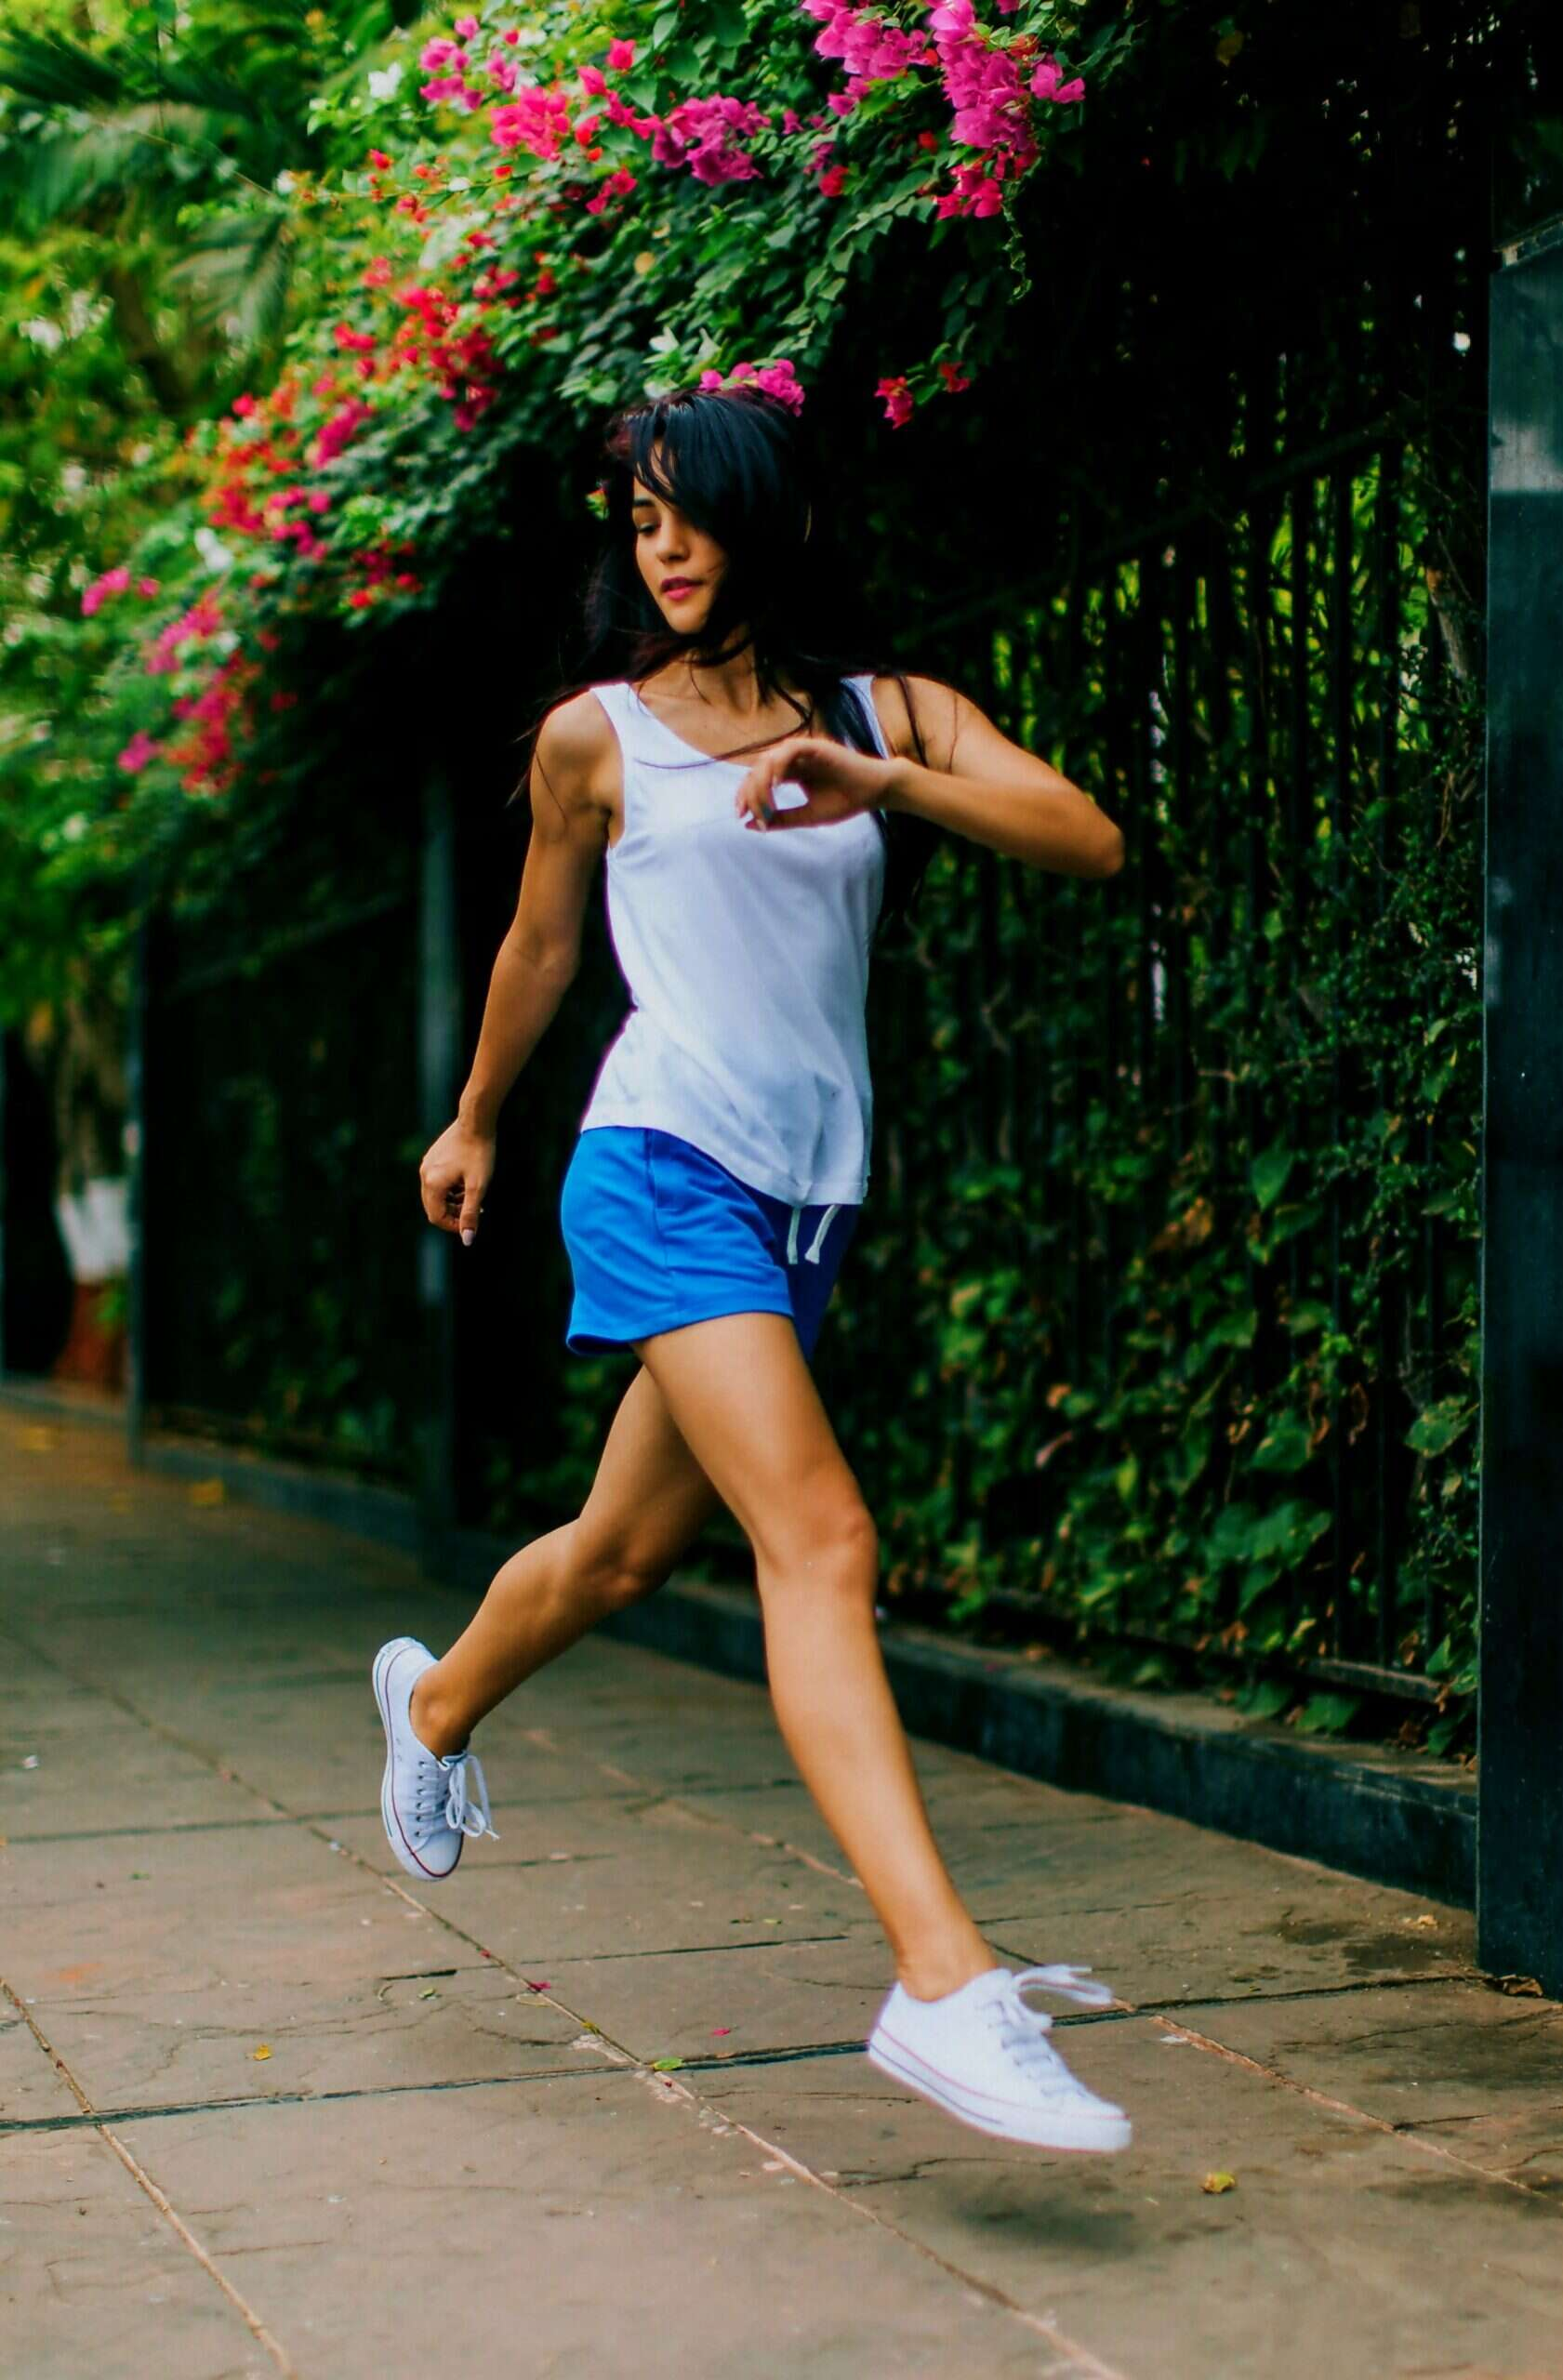 How to Stay Active in Warm Weather